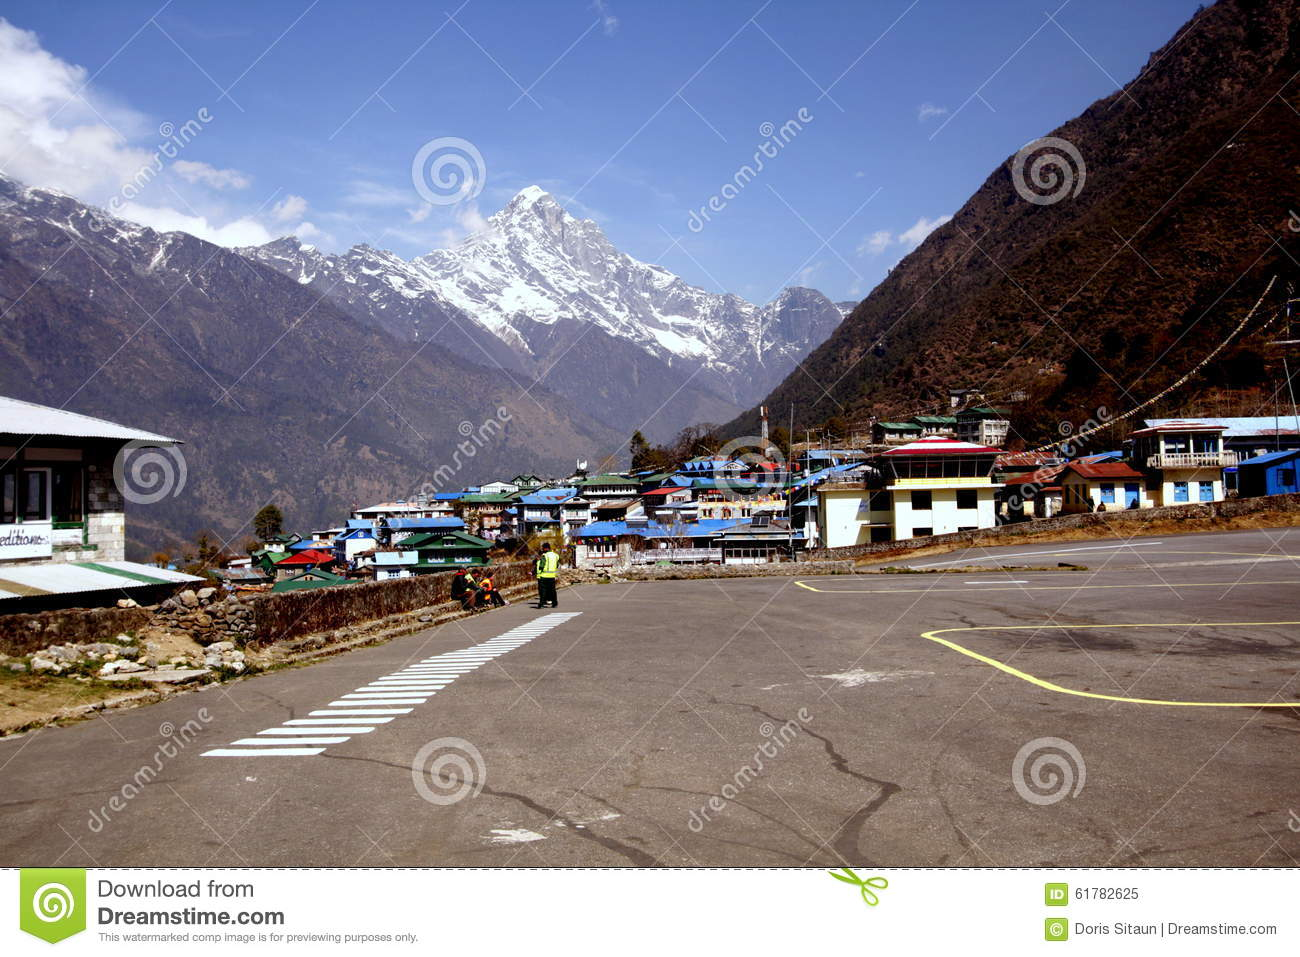 Lukla Airport Nepal Stock Photos, Images, & Pictures.